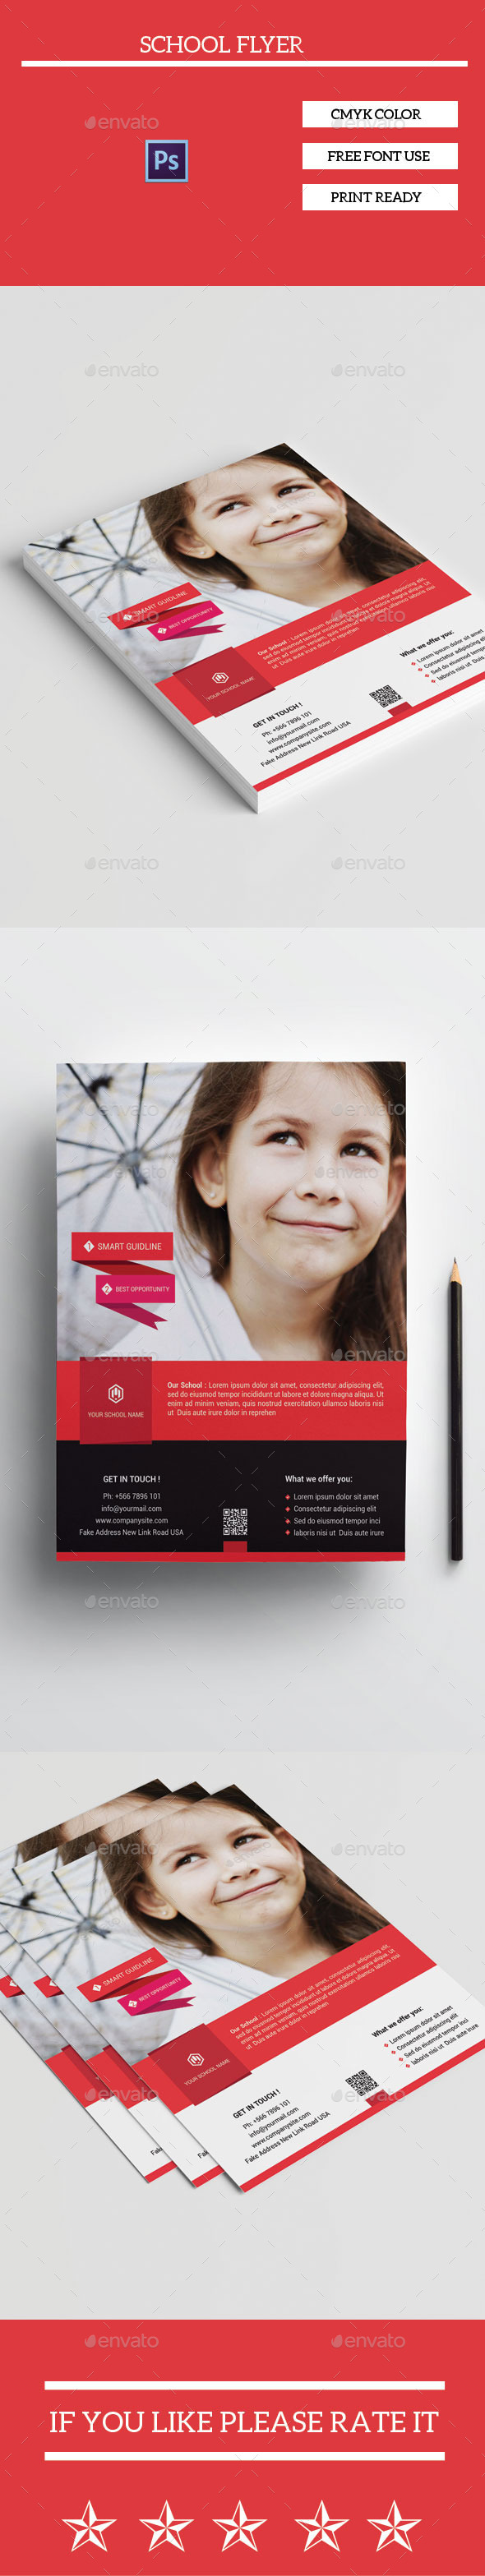 GraphicRiver School Flyer Template 11220393